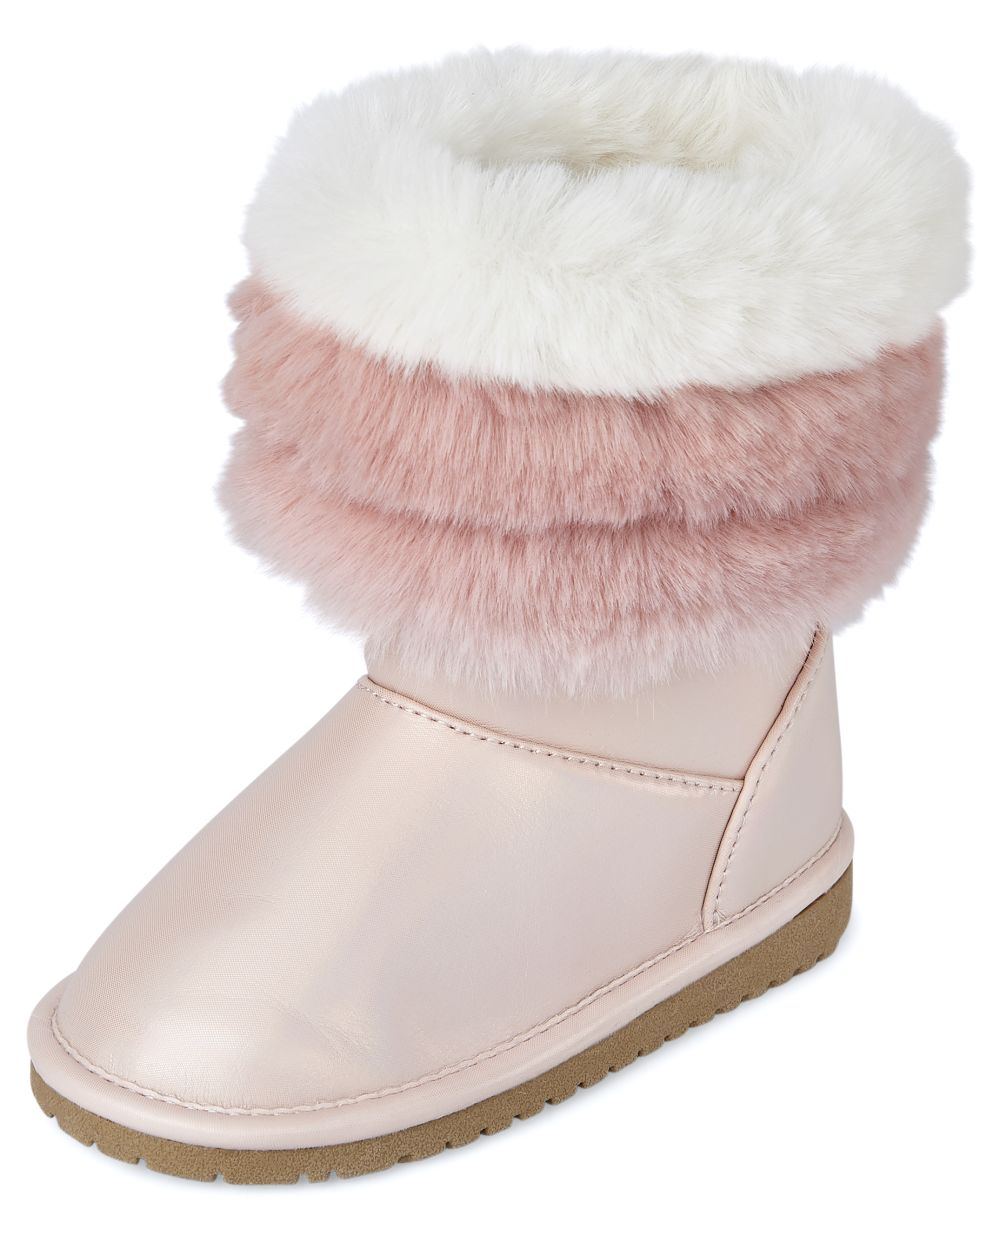 Toddler Girls Shimmer Faux Fur Cuff Boots